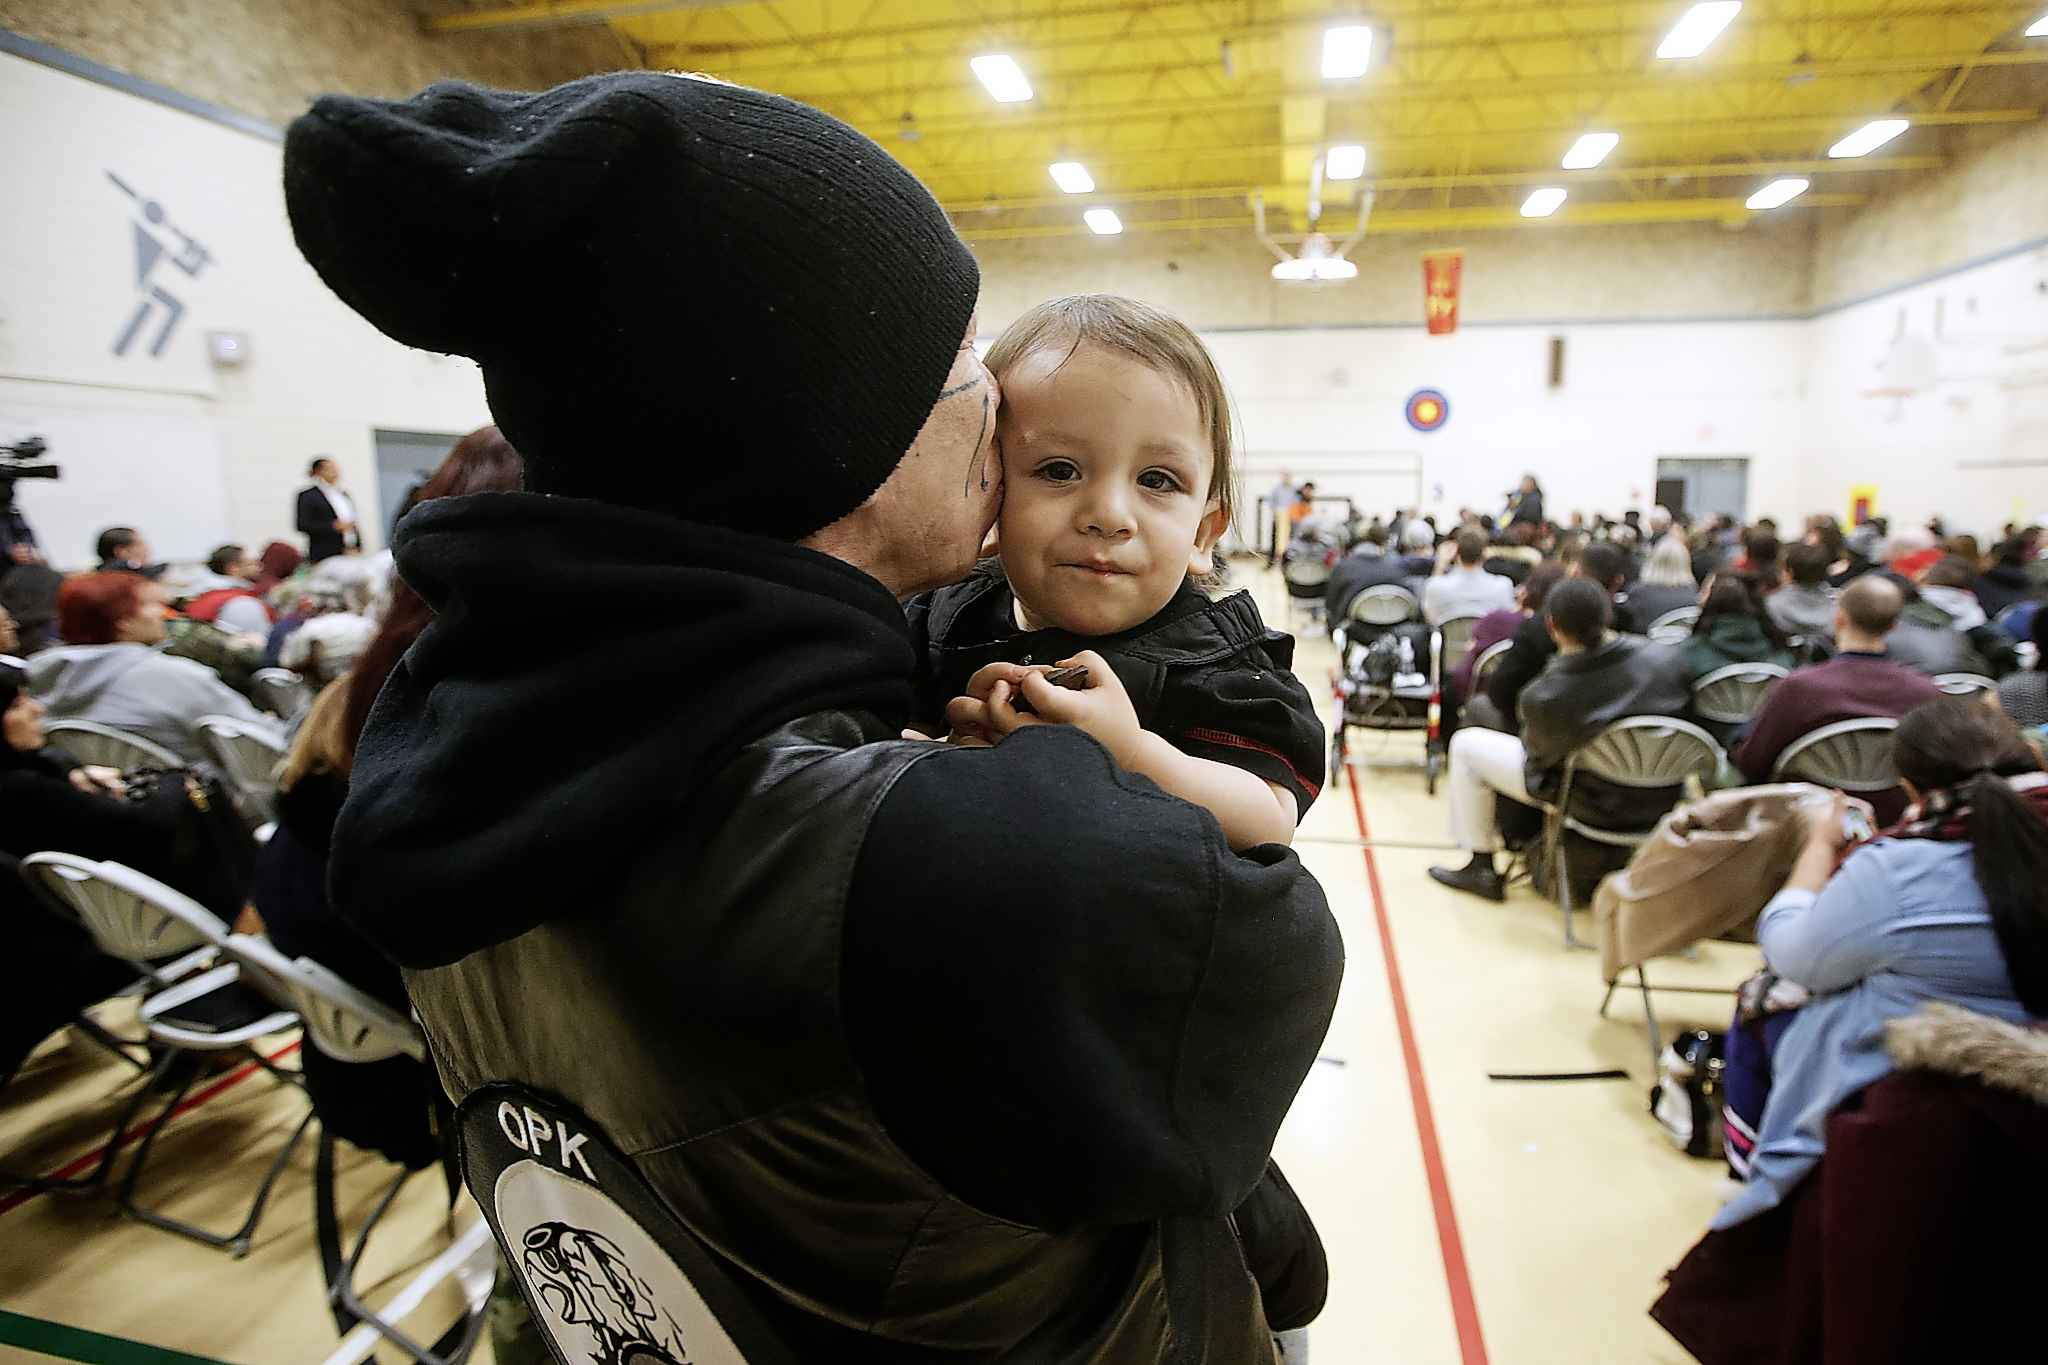 A young boy gets a kiss from his father at a community gathering organized to talk about community issues at William Whyte School.